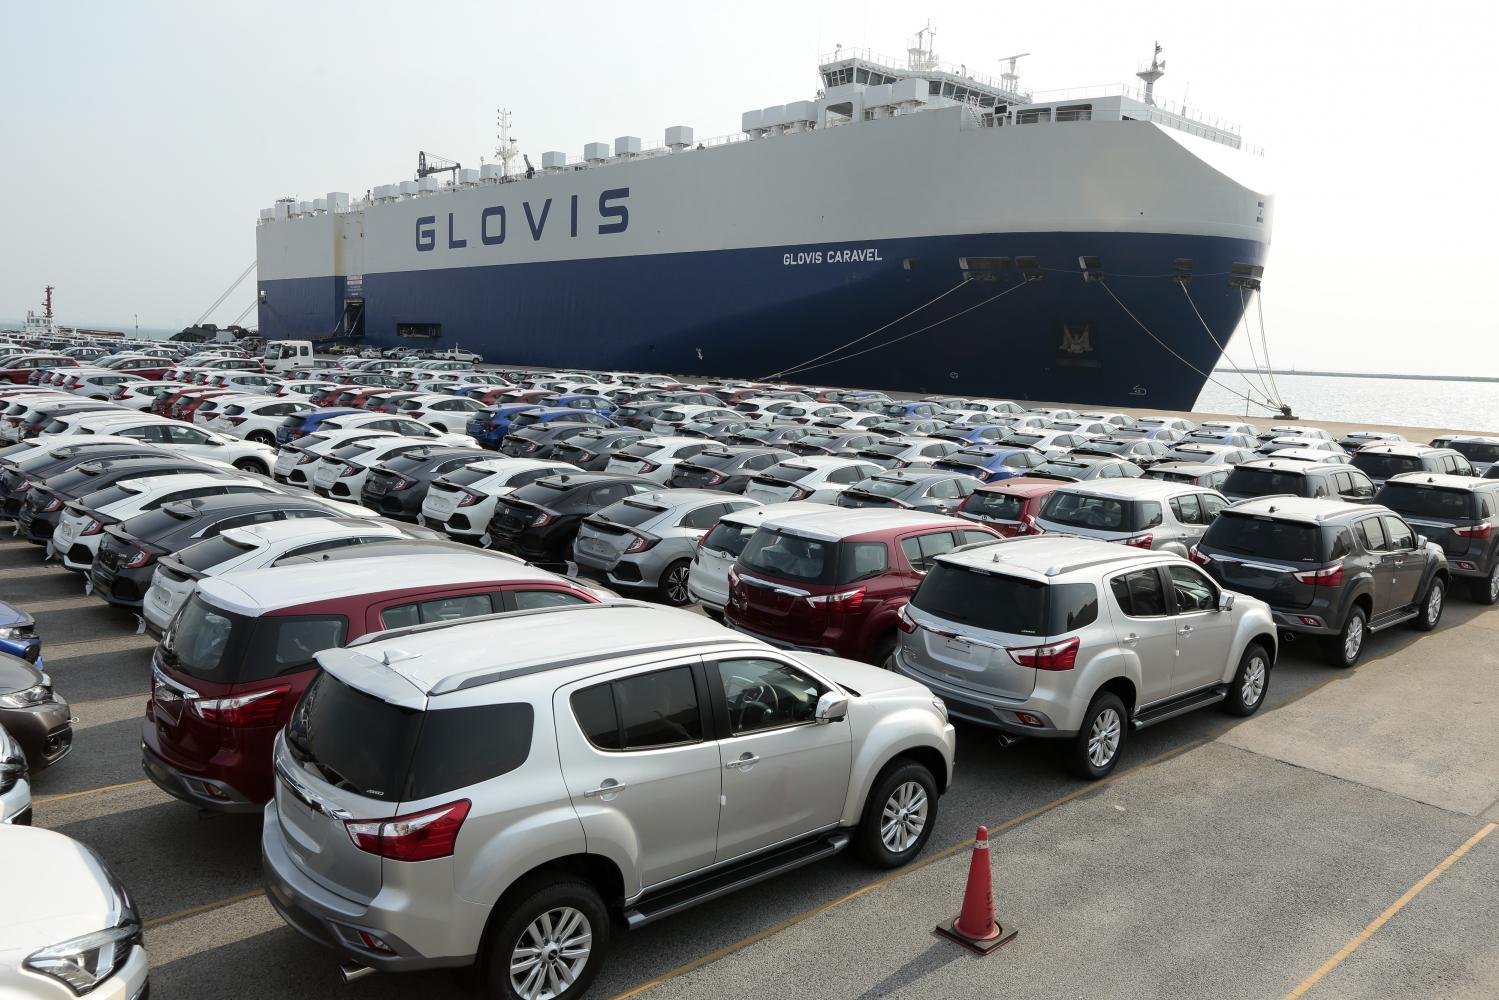 Vehicles await shipment at Laem Chabang port in Chon Buri. According to the FTI's automotive club, the industry has suffered considerably from the pandemic.(Photo by Patipat Janthong)